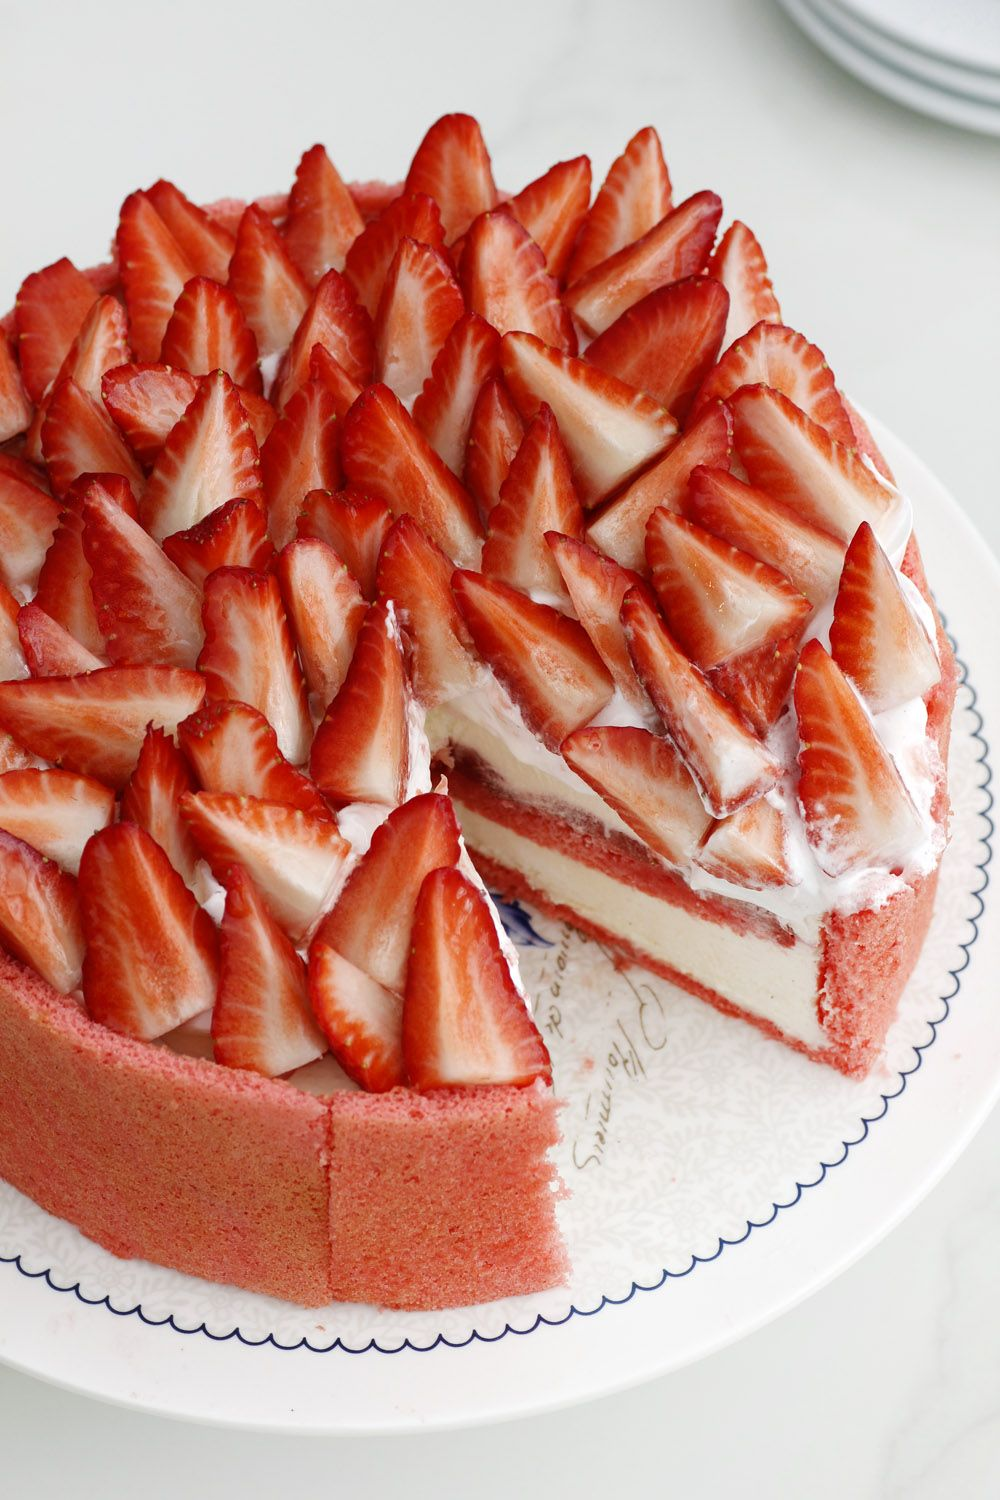 Strawberry, Vanilla and Meringue Cake